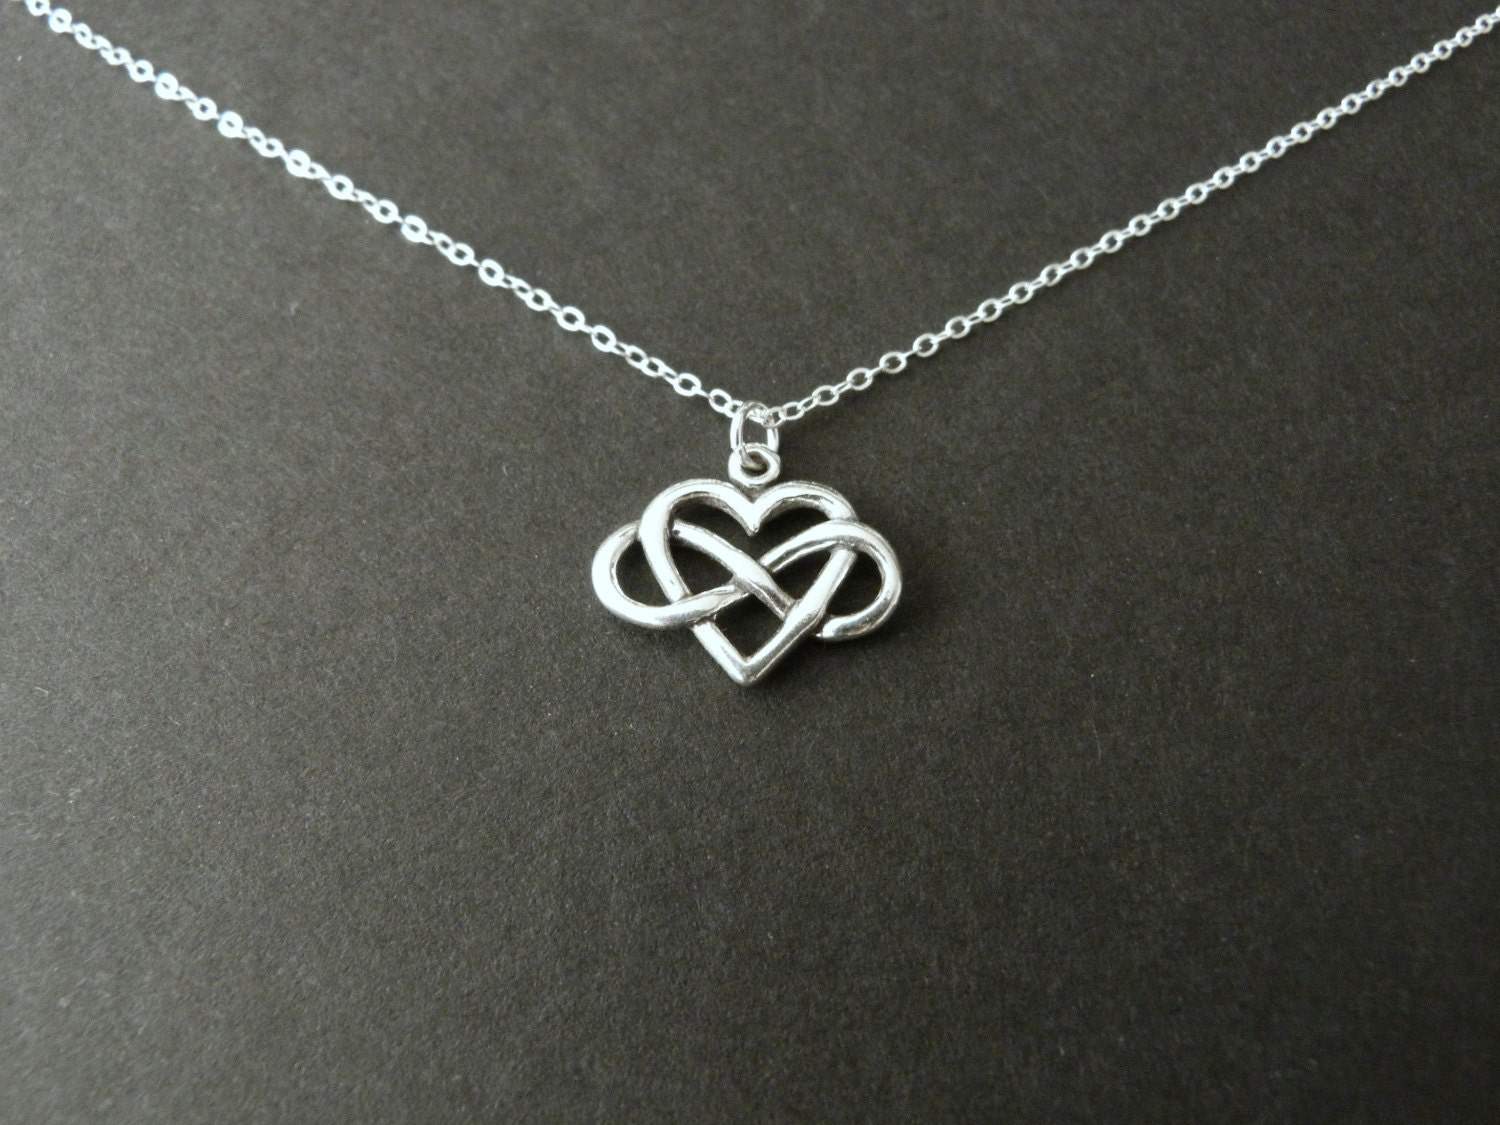 infinity heart necklace sterling silver jewelry always by. Black Bedroom Furniture Sets. Home Design Ideas